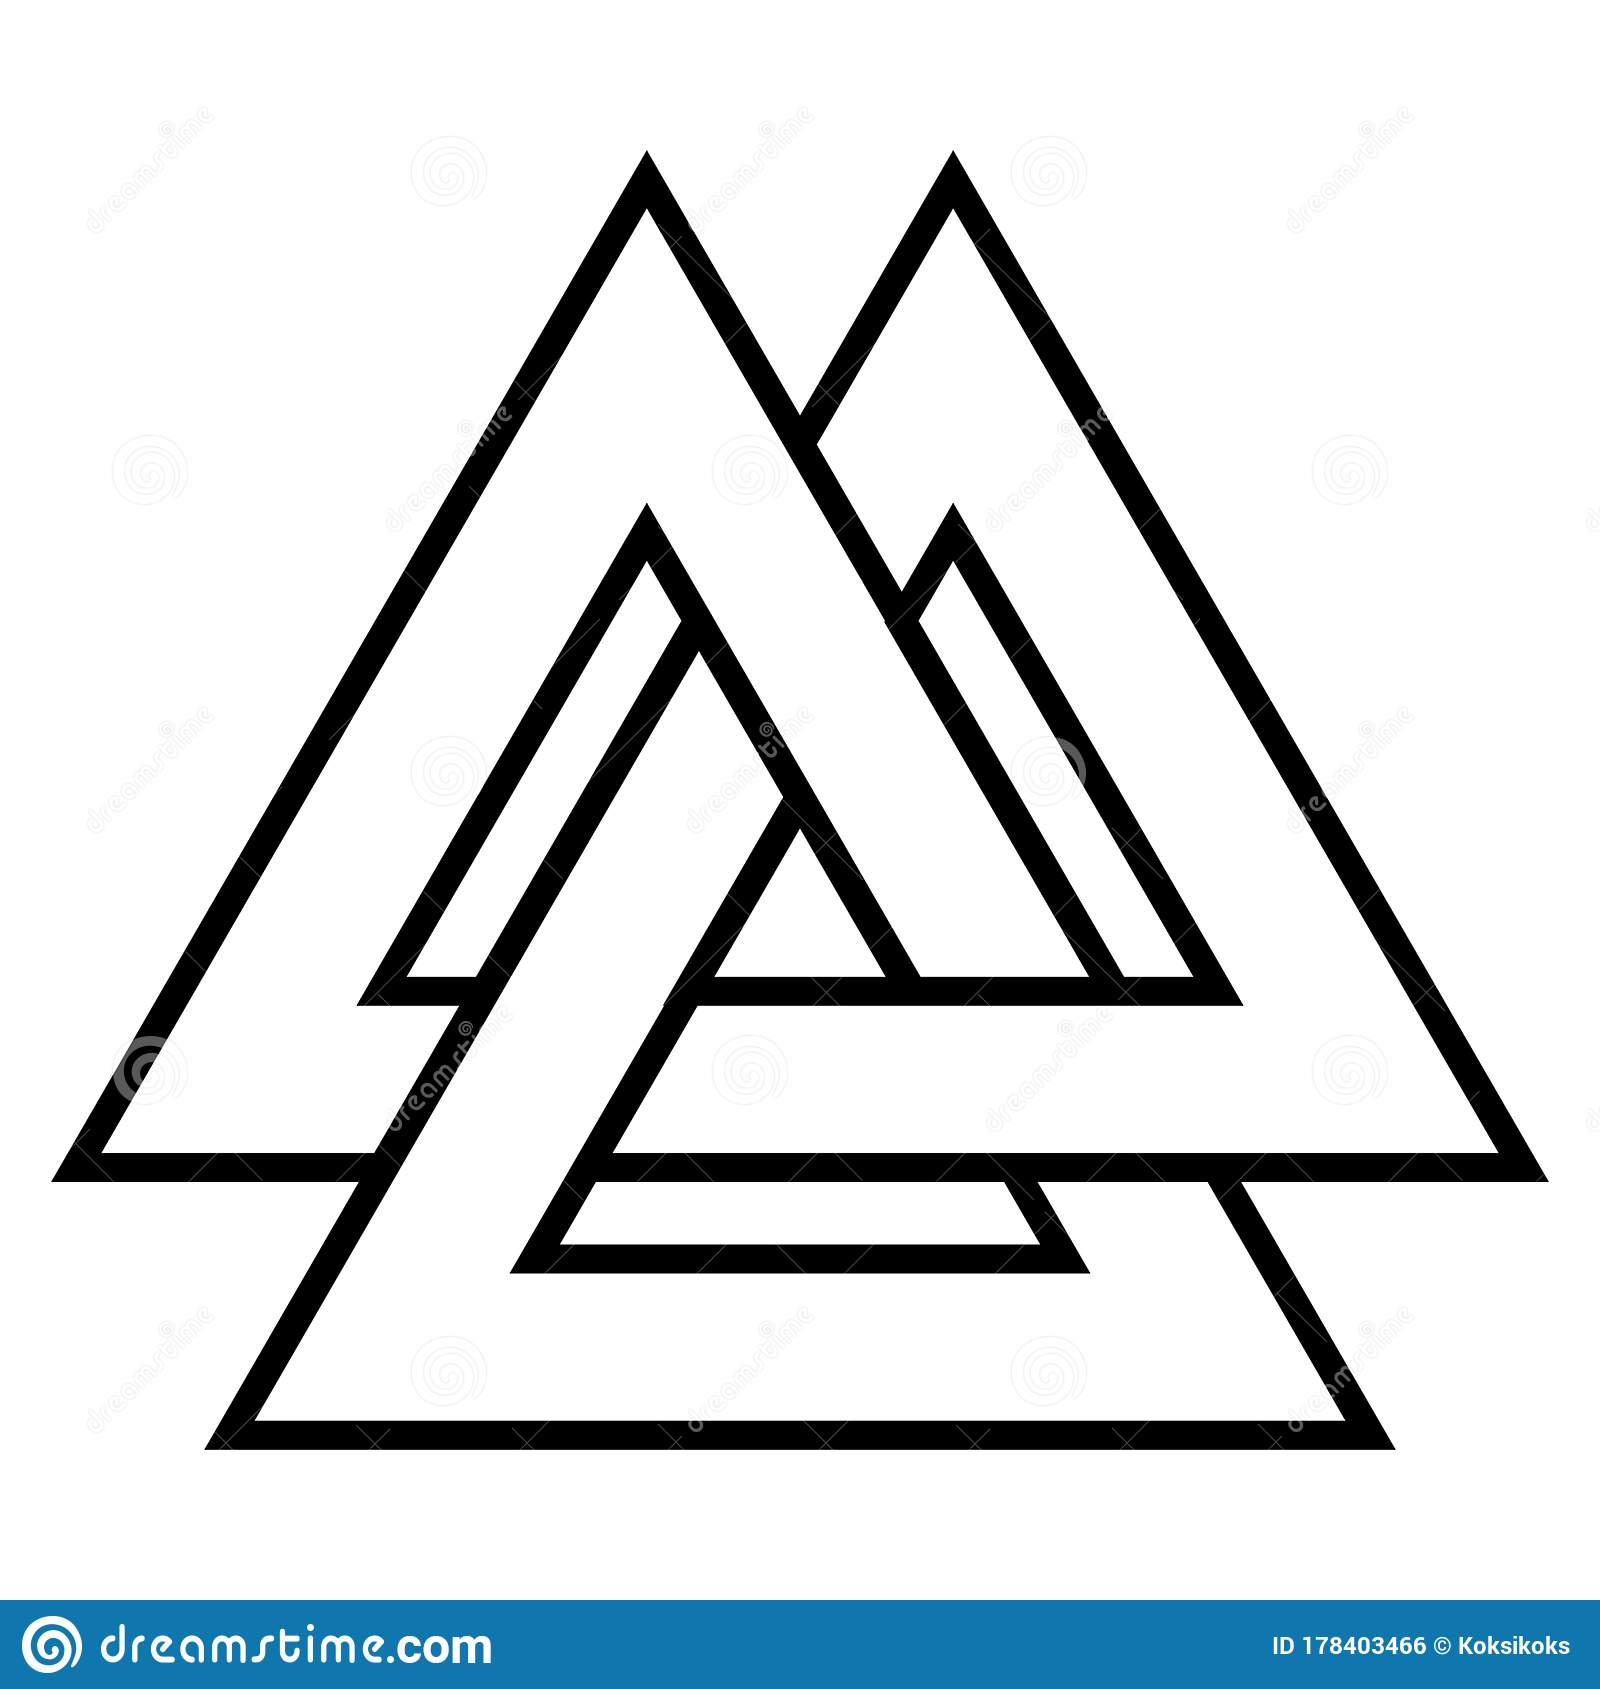 Valknut Symbol Triangle Logo Viking Age Symbol Celtic Knot Icon Vector From Triangle Tattoo Stock Vector Illustration Of Ancient Protection 178403466